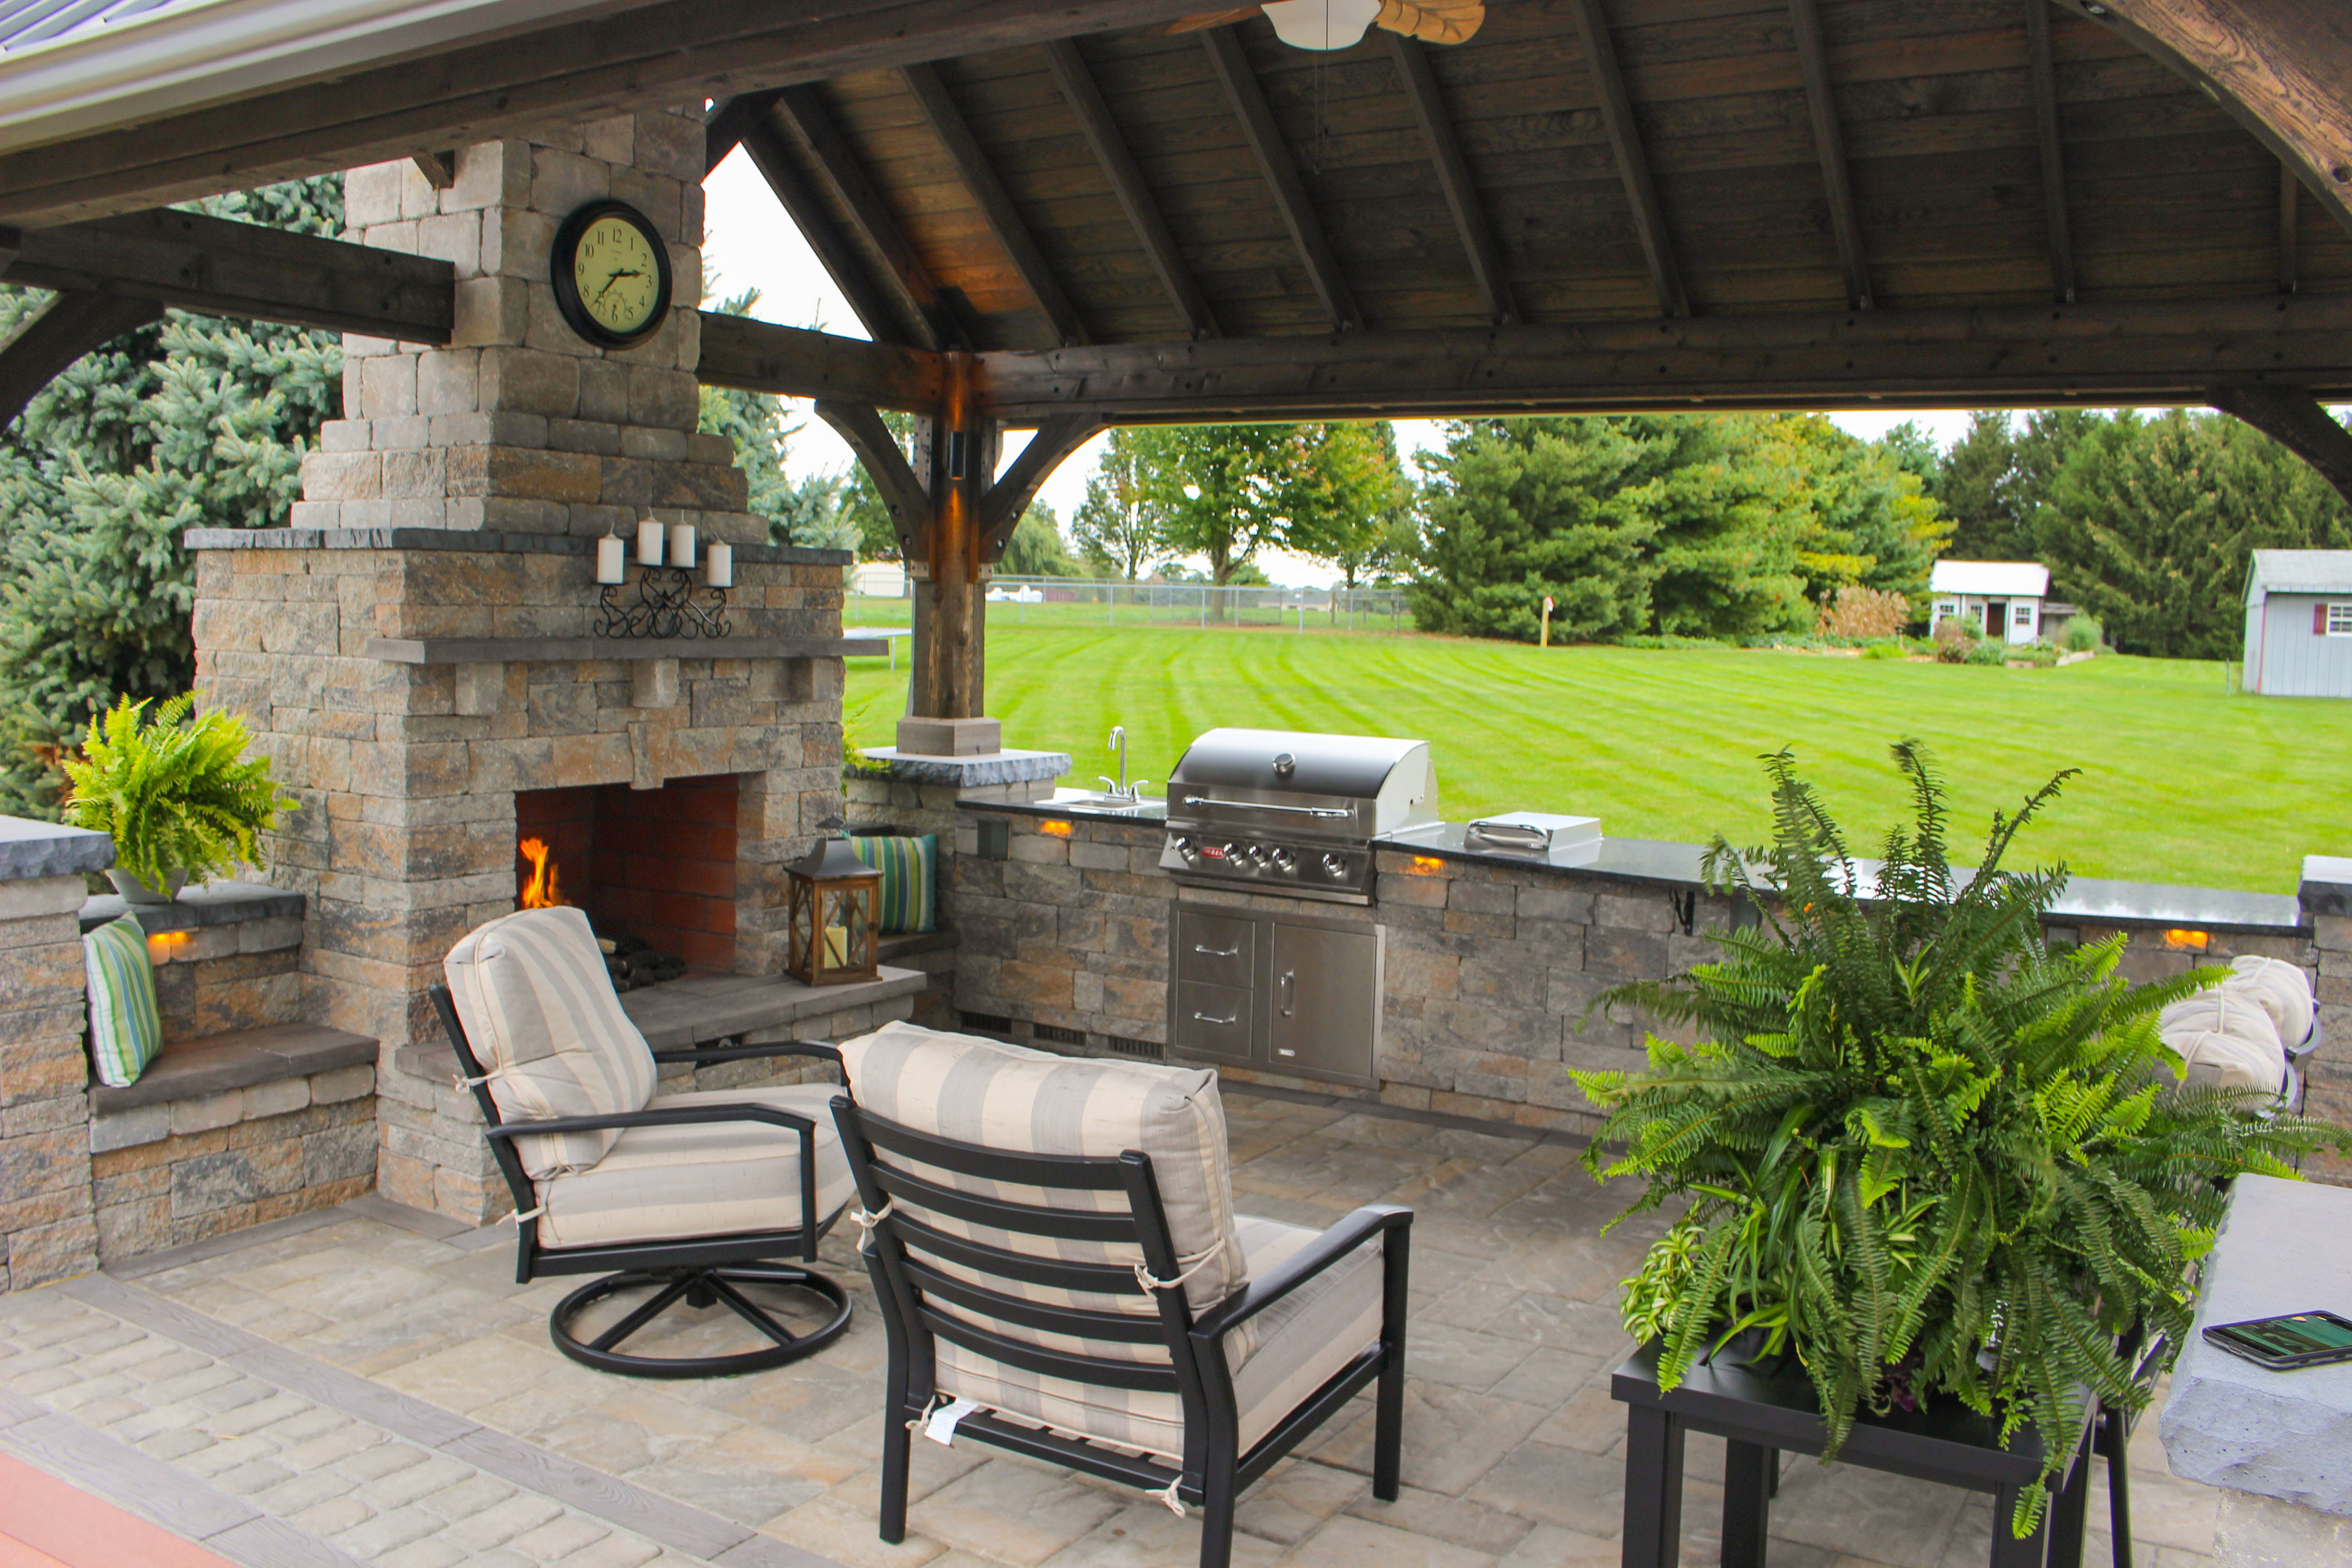 Outdoor Patio with Pavilion | See the Photos and Get a ... on Outdoor Deck Patio Ideas id=35723